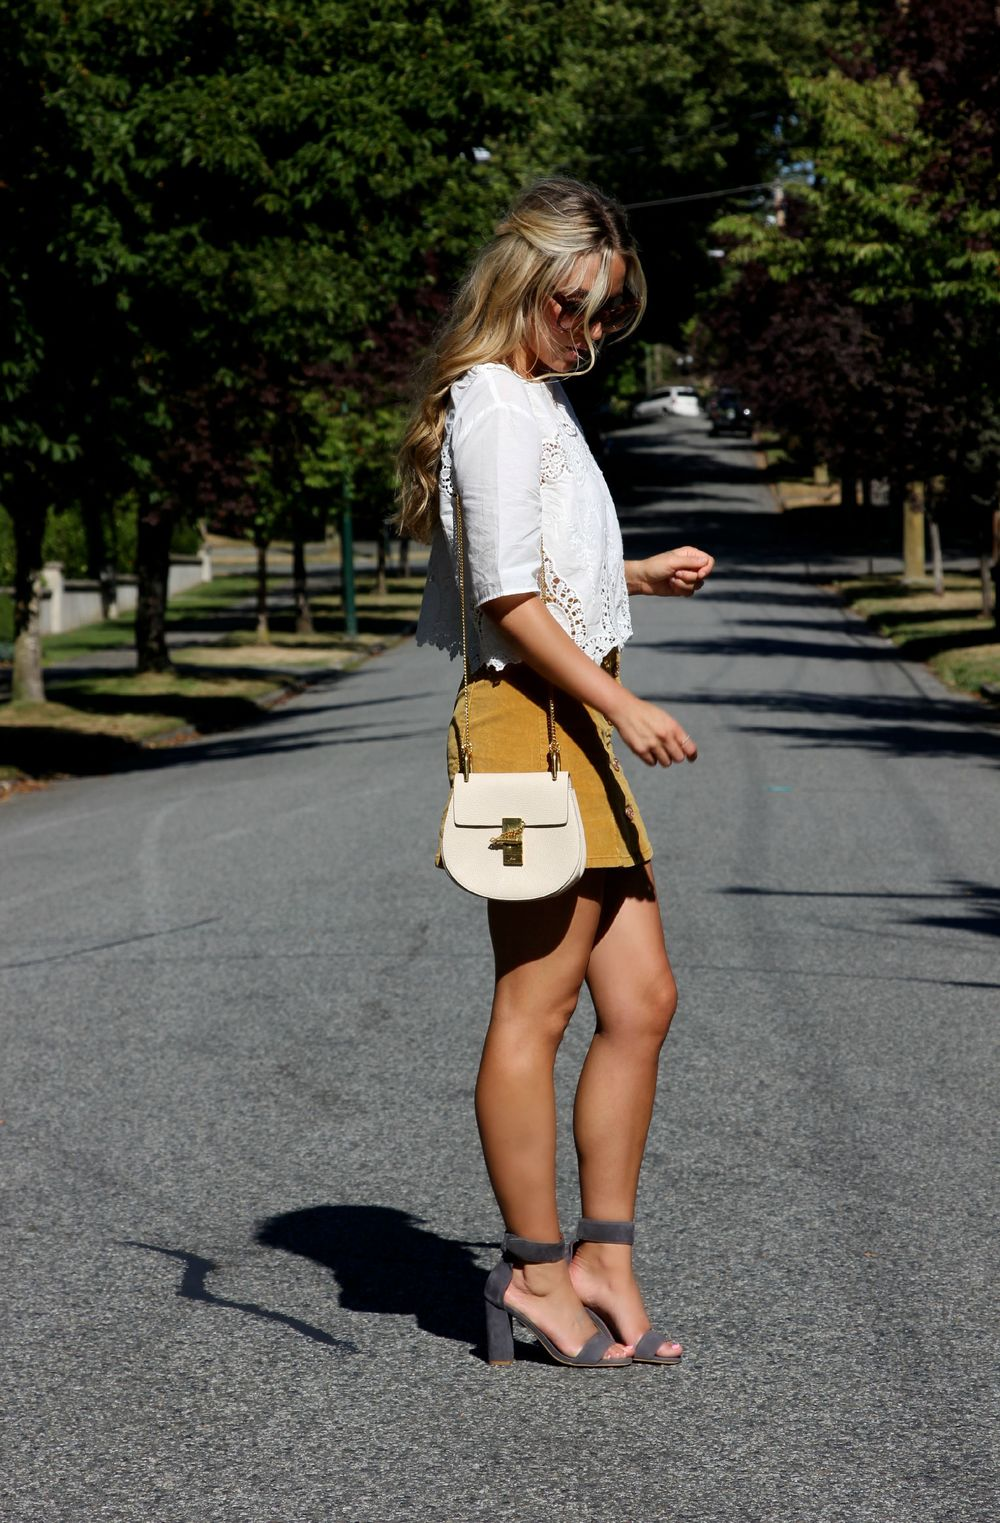 Top ,  Skirt  &  Shoes  via  Urban Outfitters ,  Chloé  Bag,  Céline  Shades,  Effy  Necklace